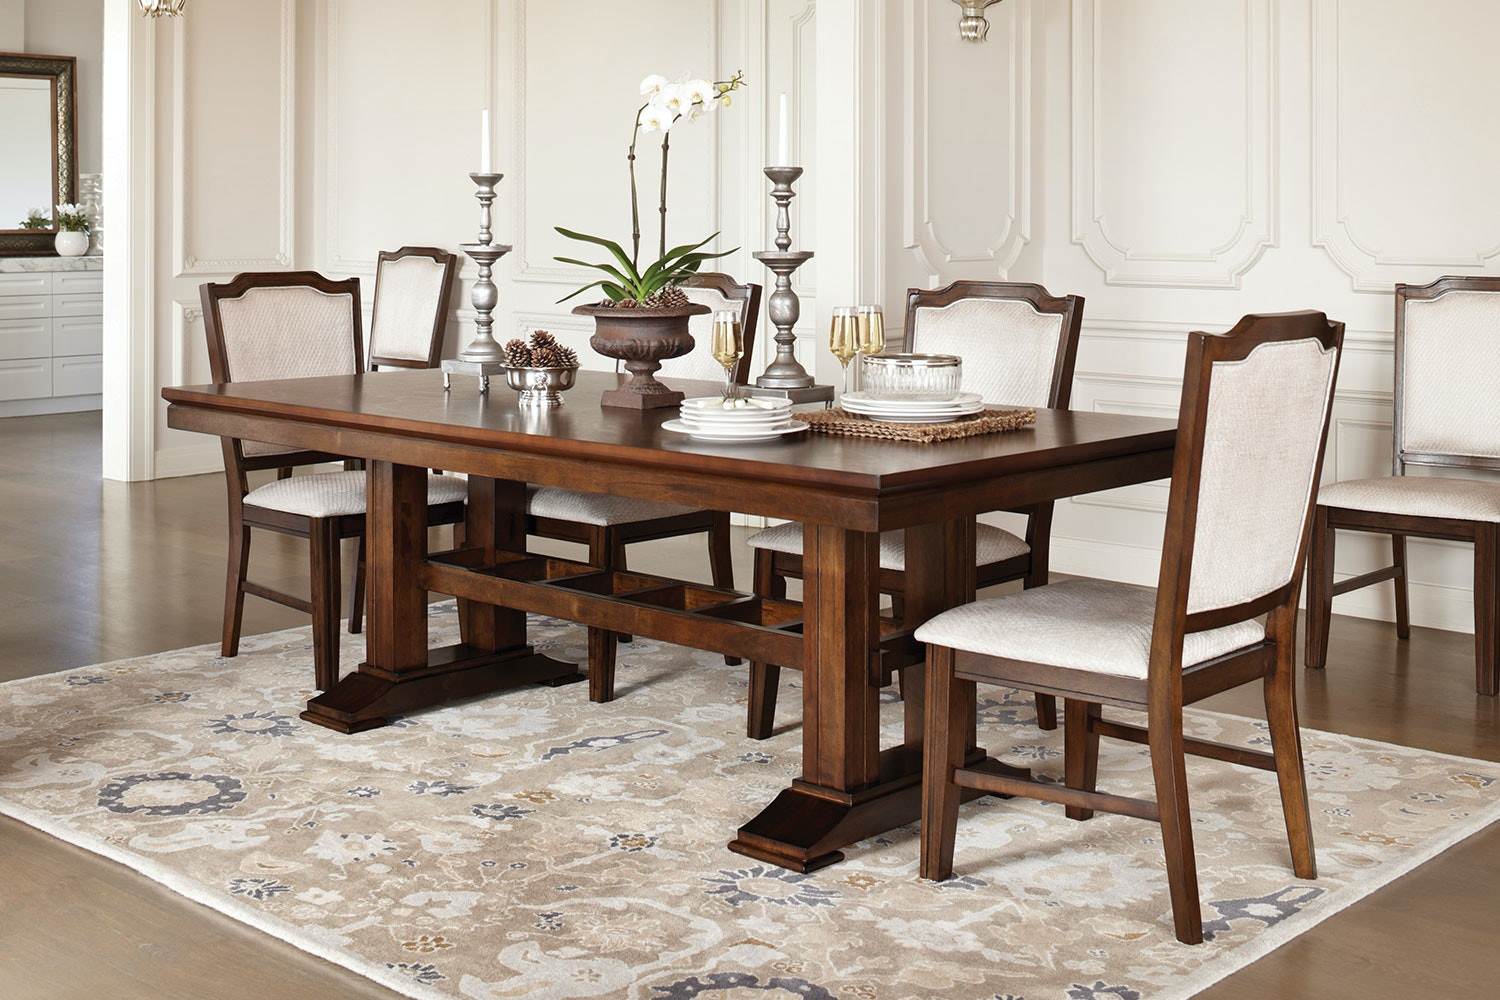 Windsor Dining Table By Nero Furniture